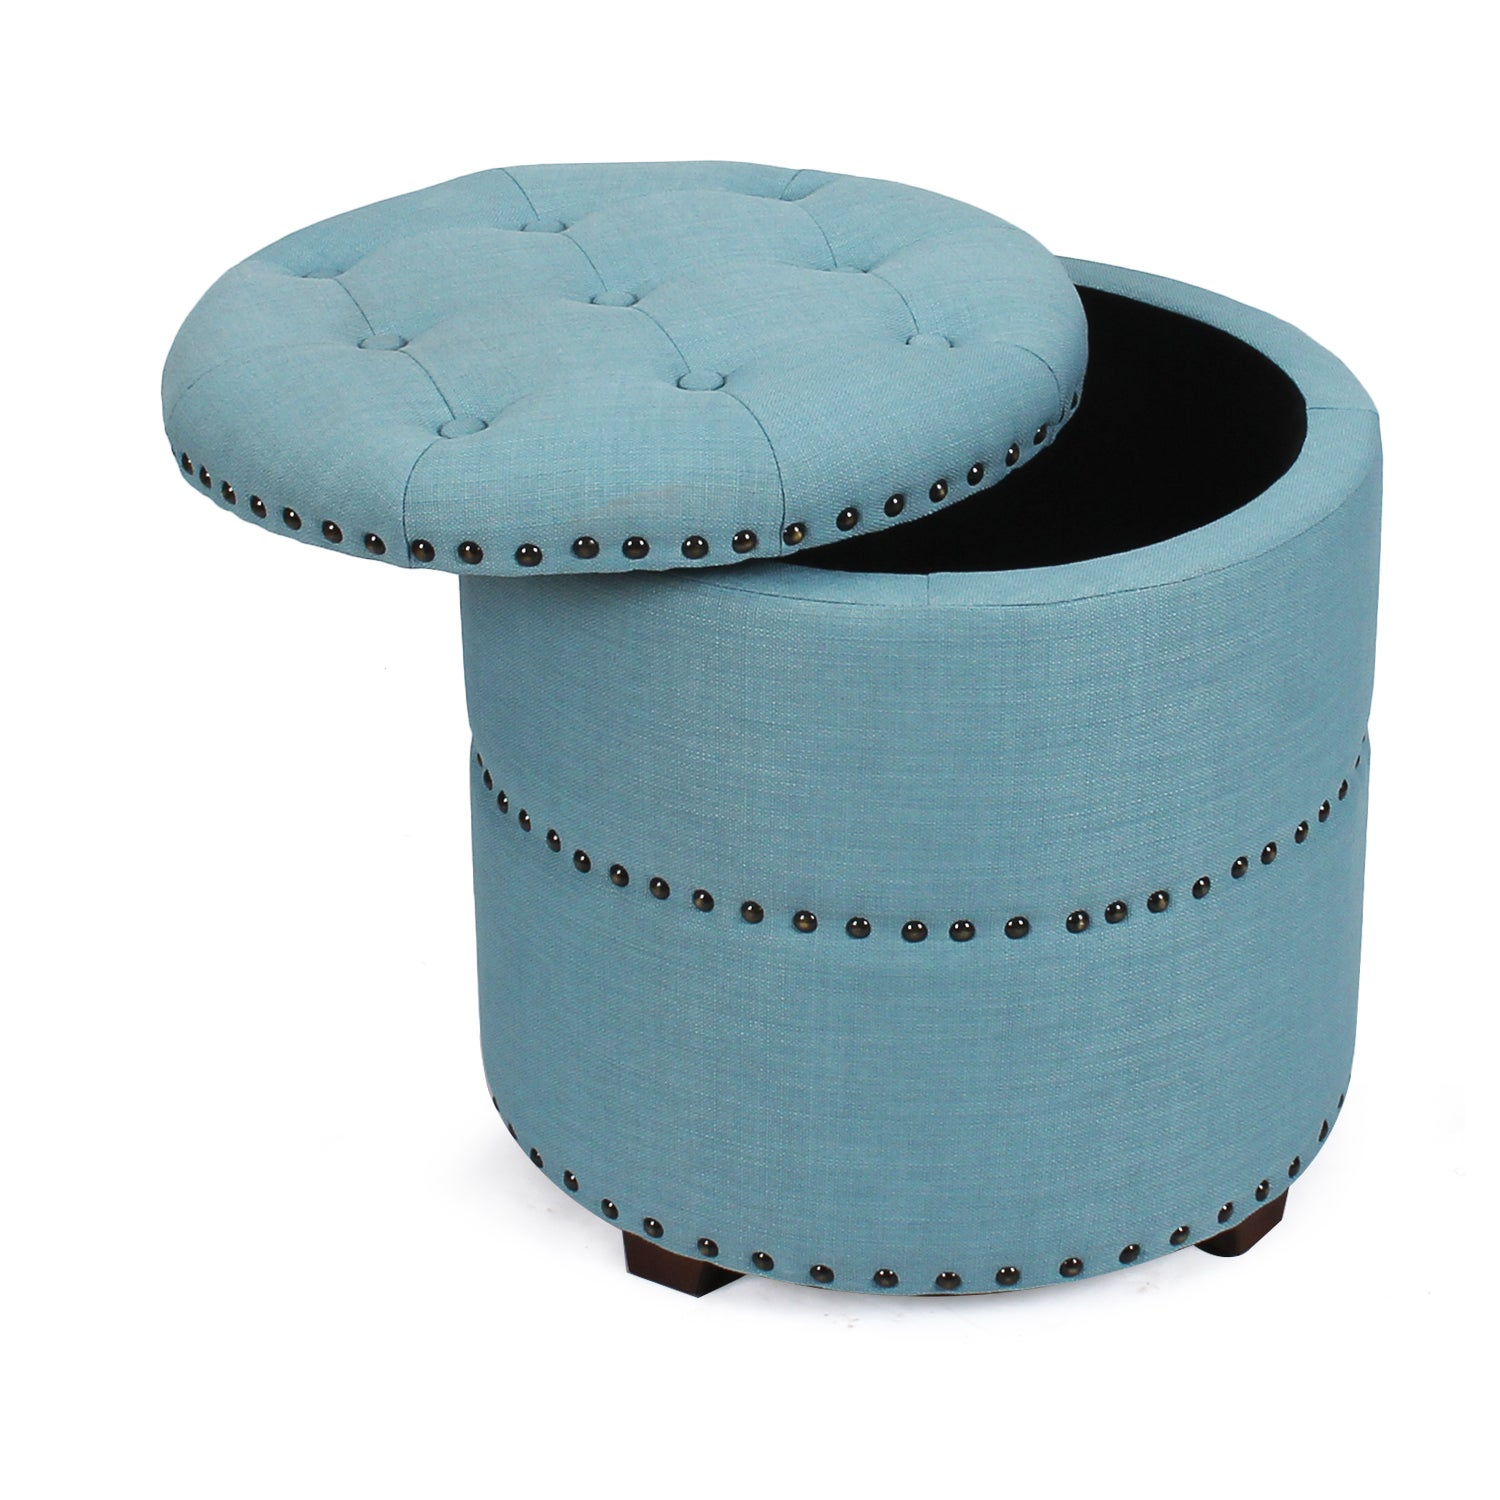 Surprising Details About Adeco Fabric Round Storage Ottoman Caraccident5 Cool Chair Designs And Ideas Caraccident5Info